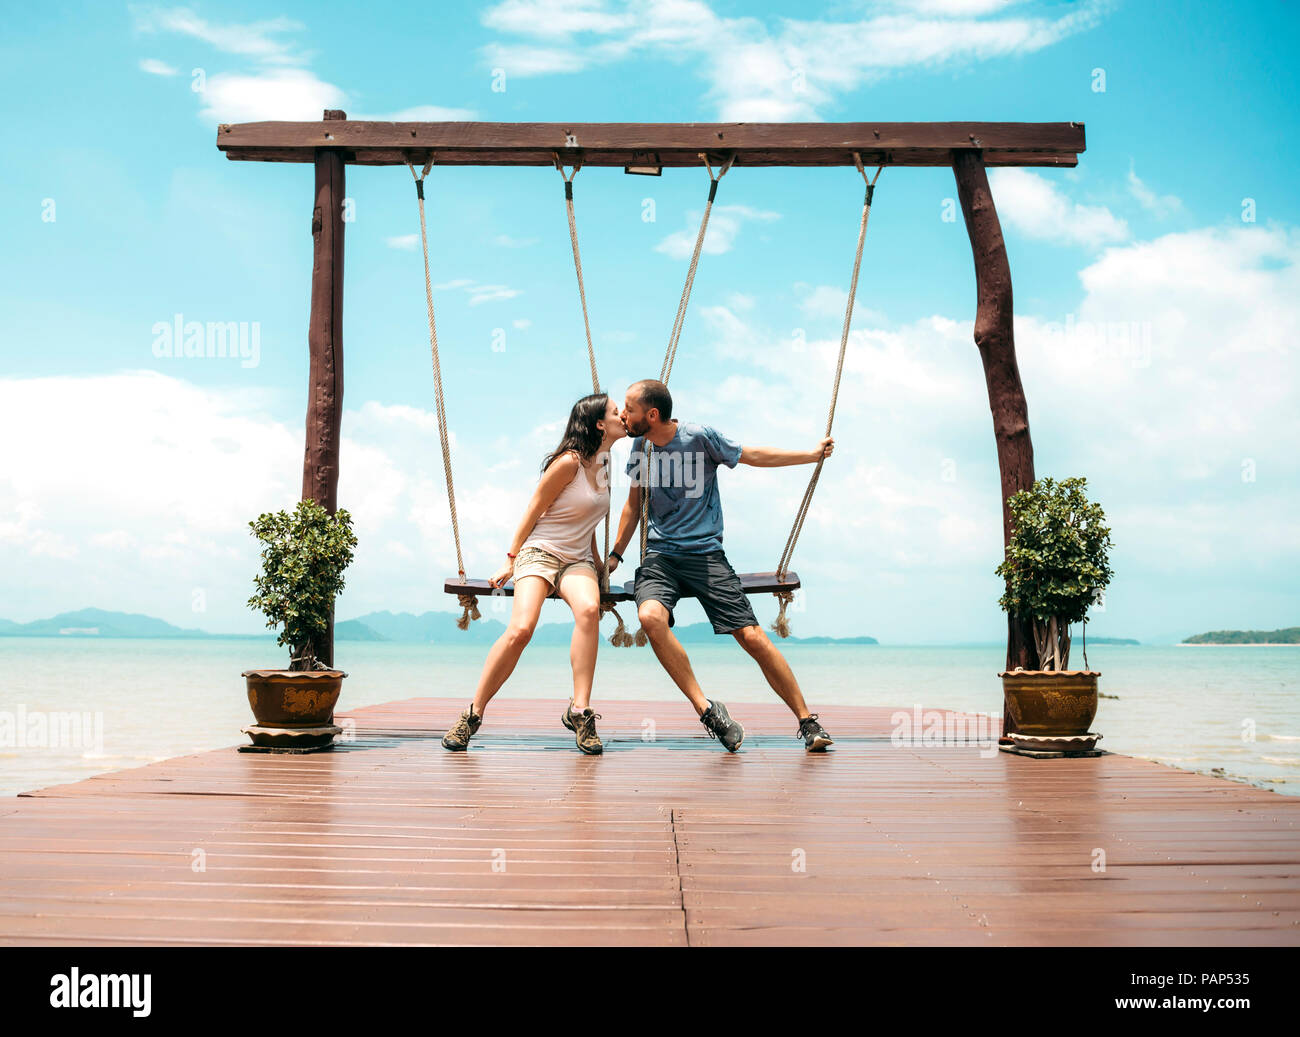 Thailand, Koh Lanta, kissing couple sitting on swings in front of the sea - Stock Image